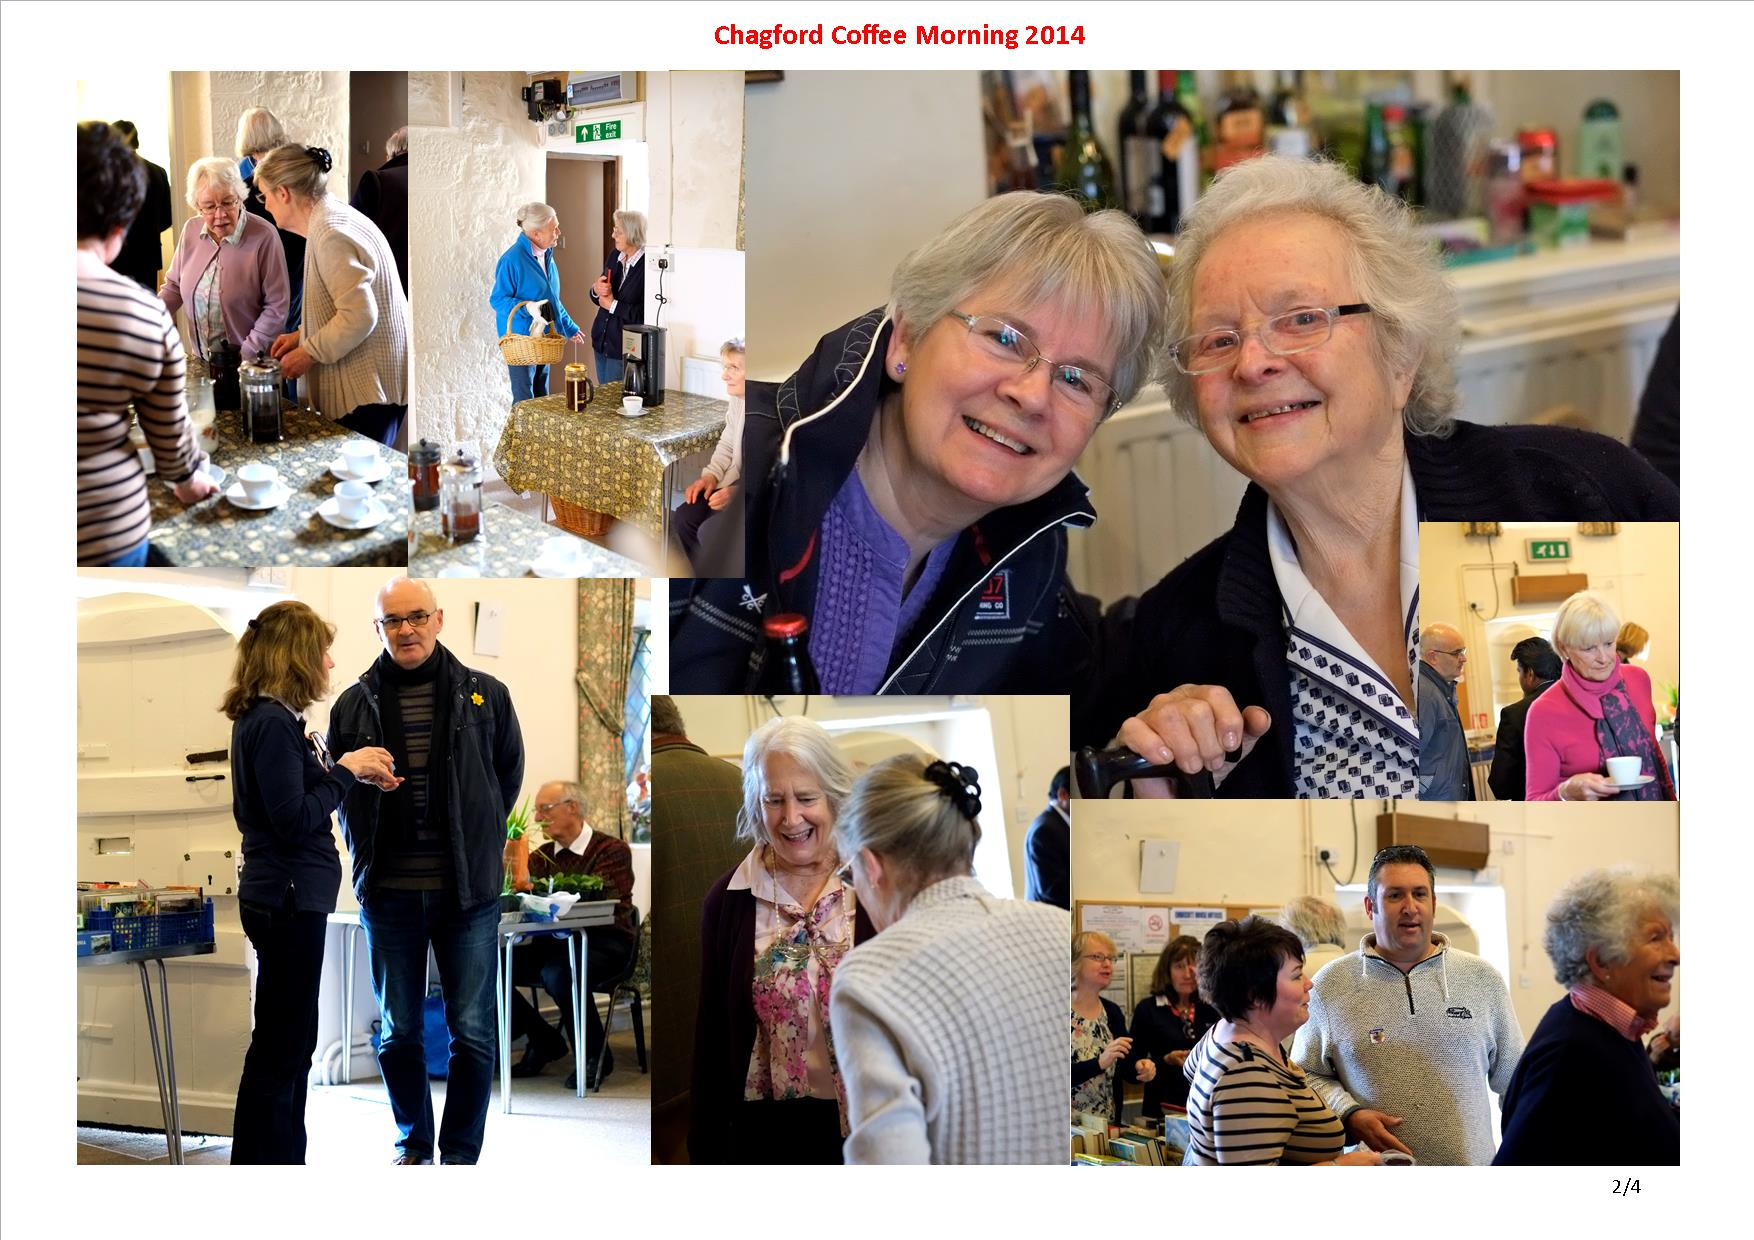 Chagford Coffee Morning 2014 02